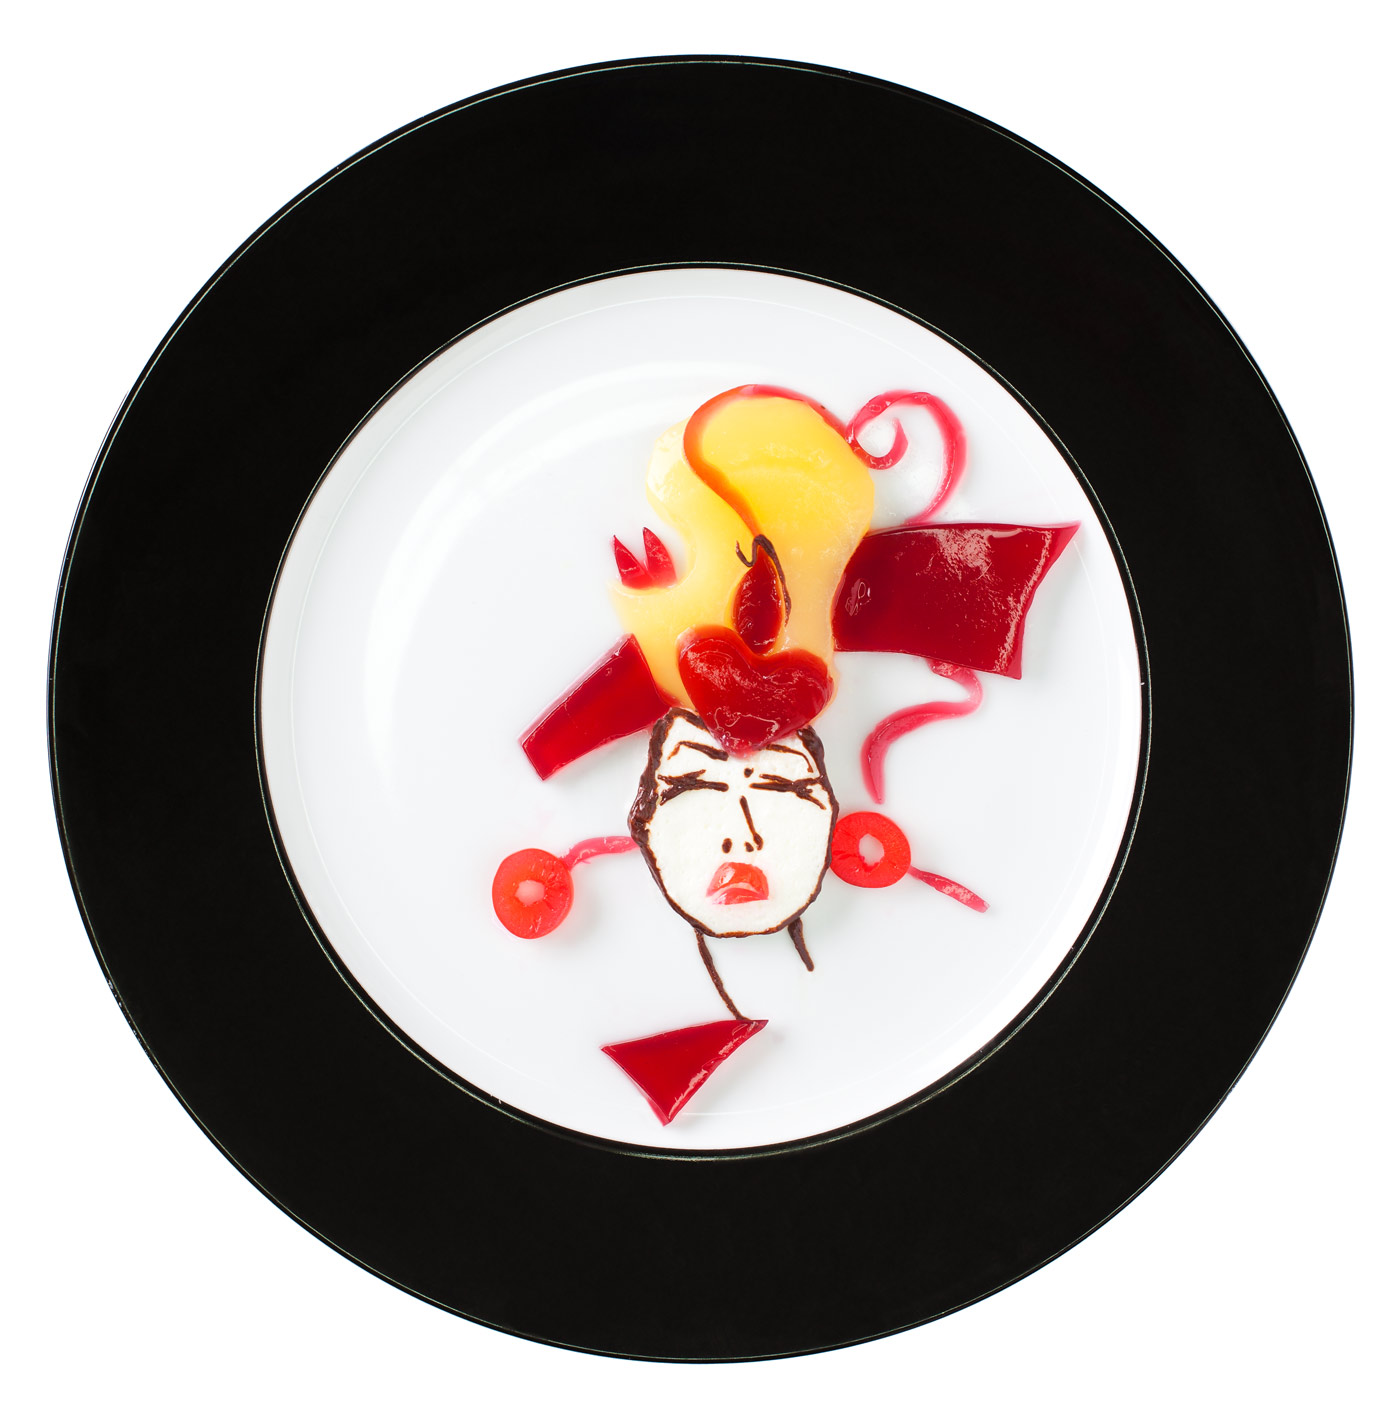 Fashion food, fruit jelly with cream depicting a womans portrait wearing earrings and a hat